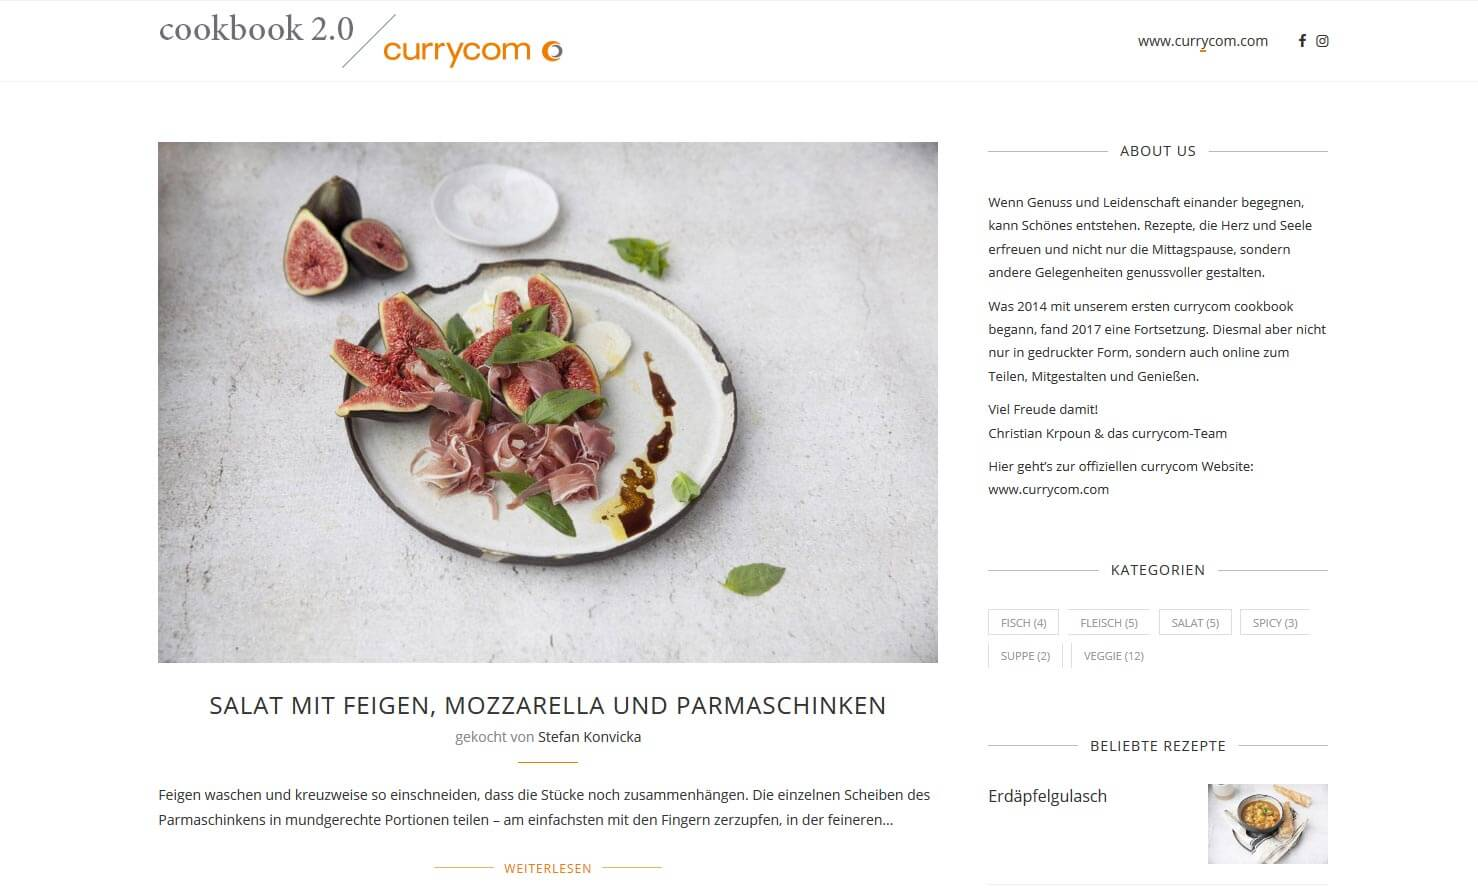 Screenshot Food-Blog cookbook.currycom.com - mit WordPress erstellt